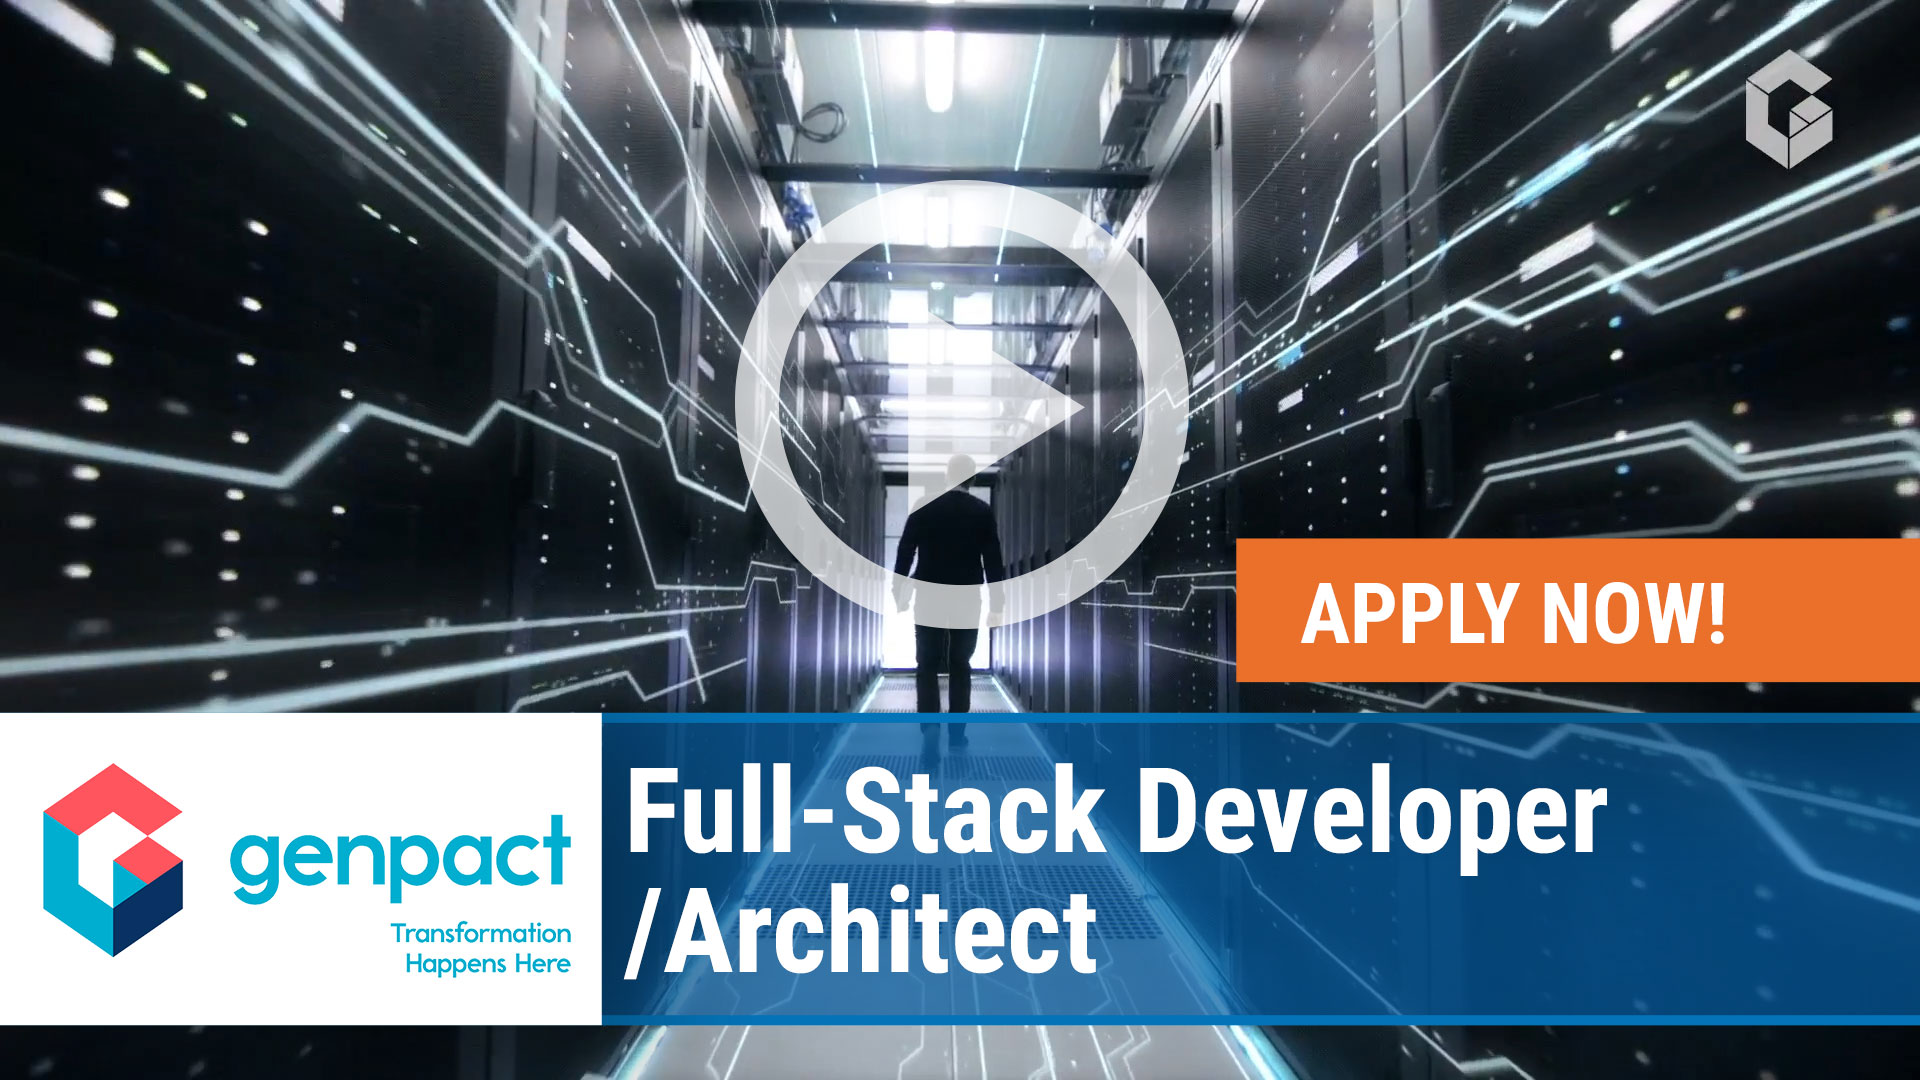 Watch our careers video for available job opening Full-Stack Developer - Architect in Boston, MA